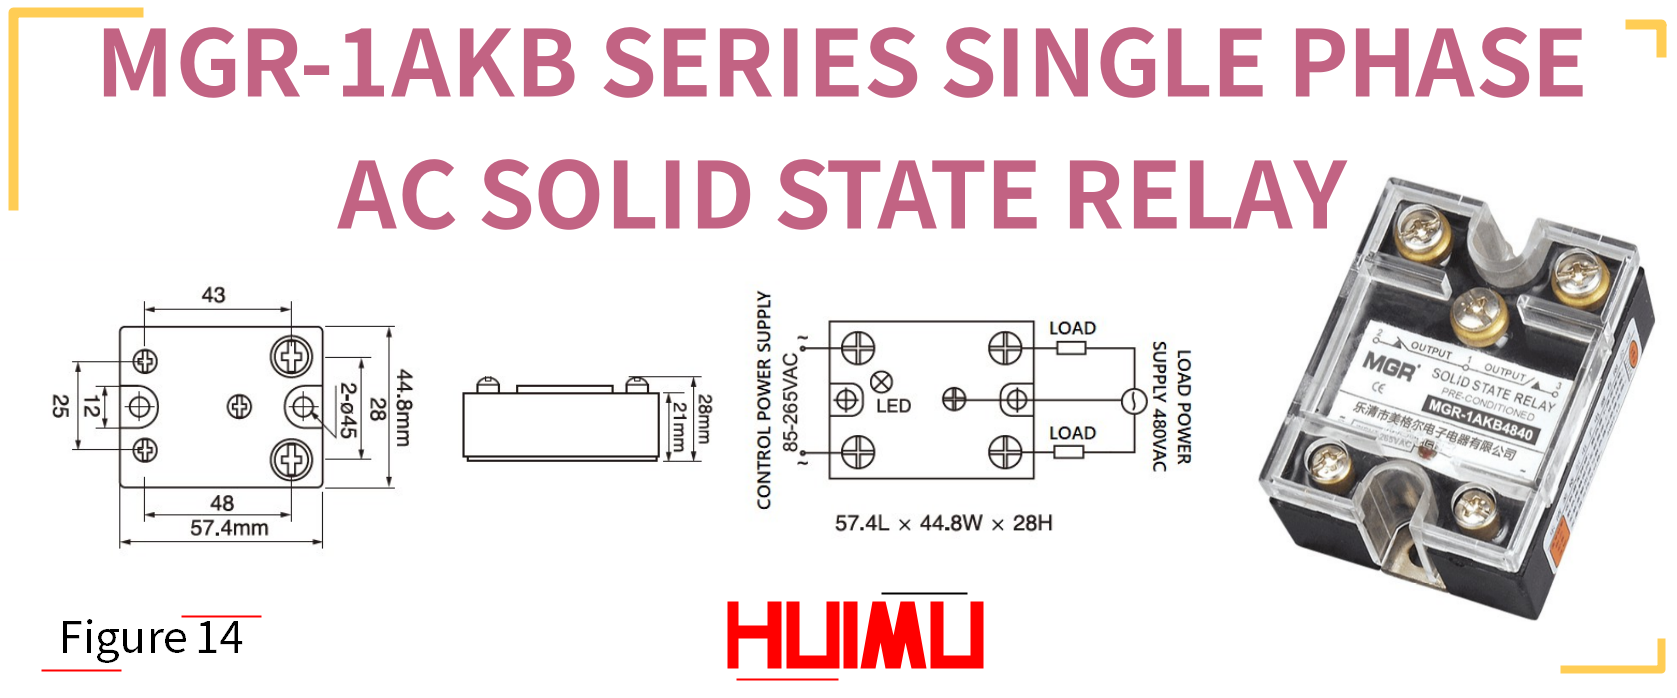 MGR-1AKB SERIES SINGLE PHASE AC SOLID STATE RELAY